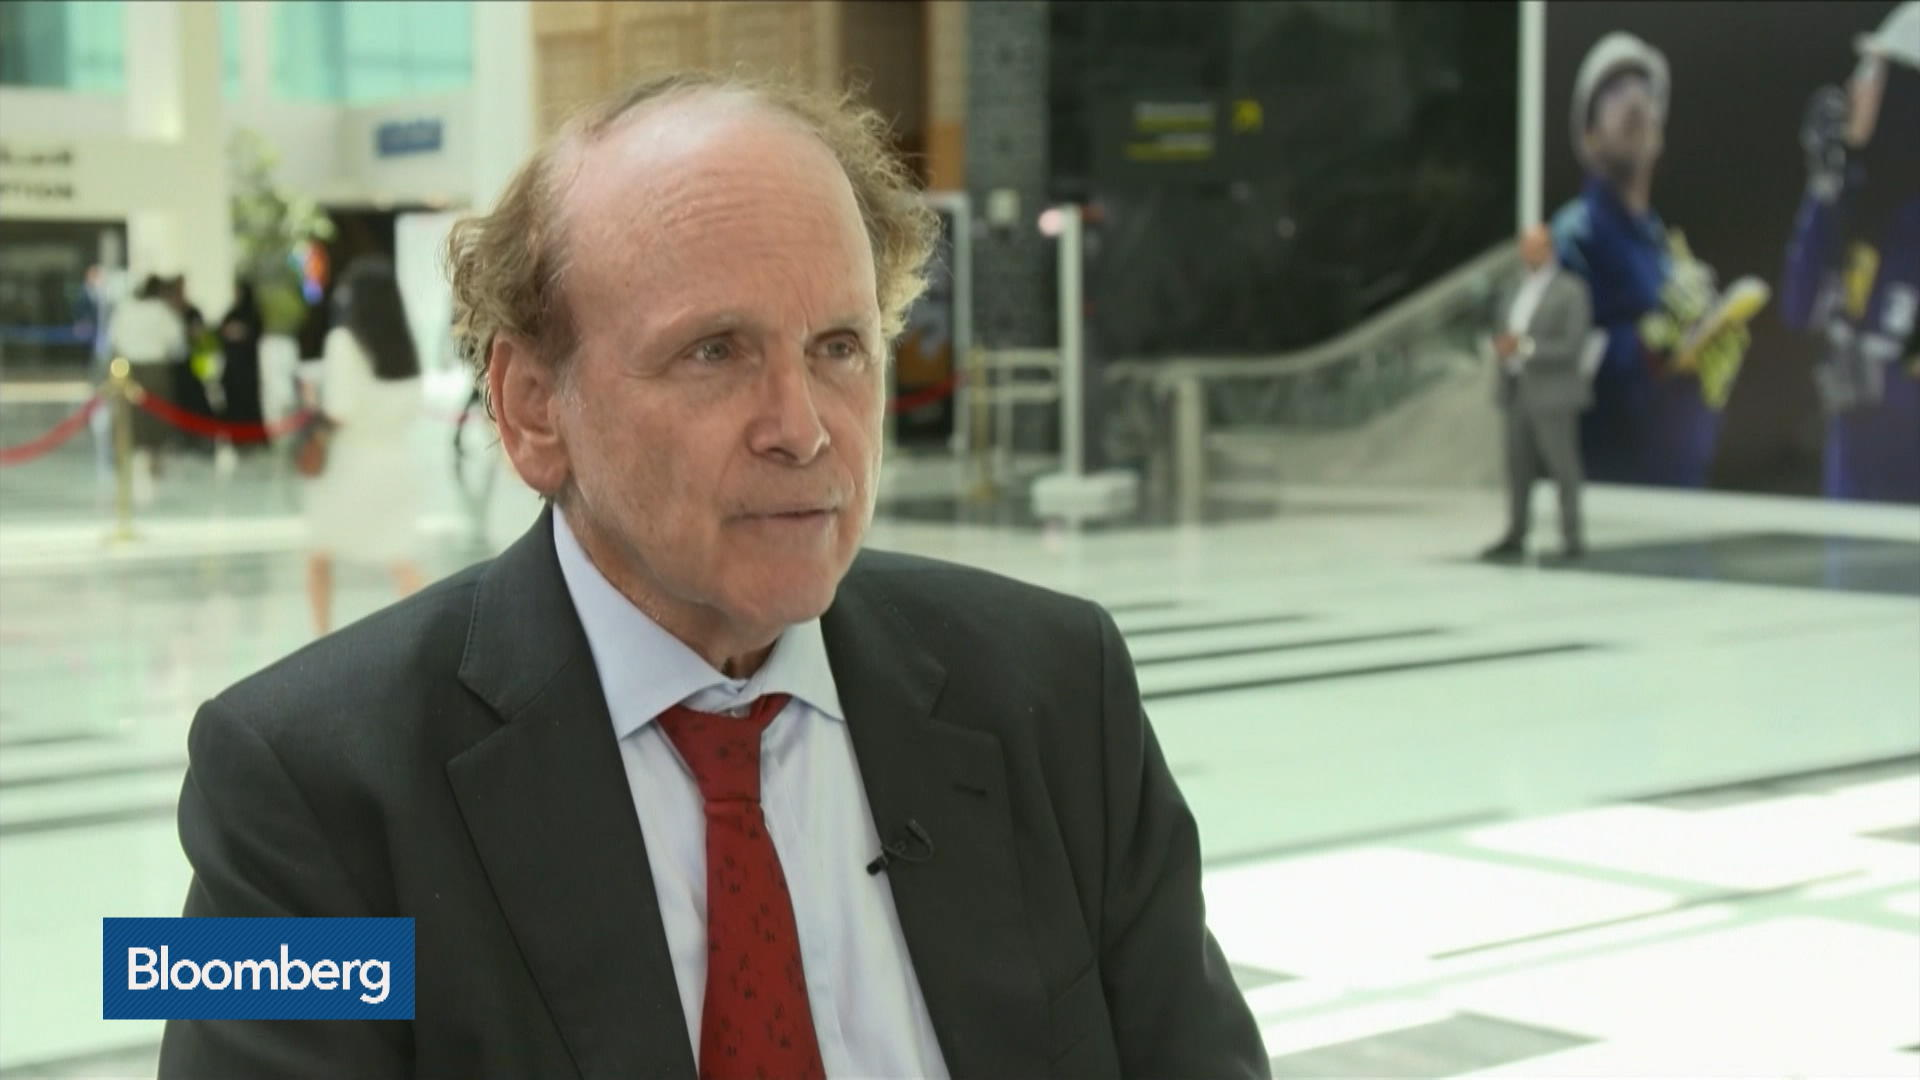 Oil Market: Demand Points to Slower Growth, Not a Recession, IHS's Yergin Says